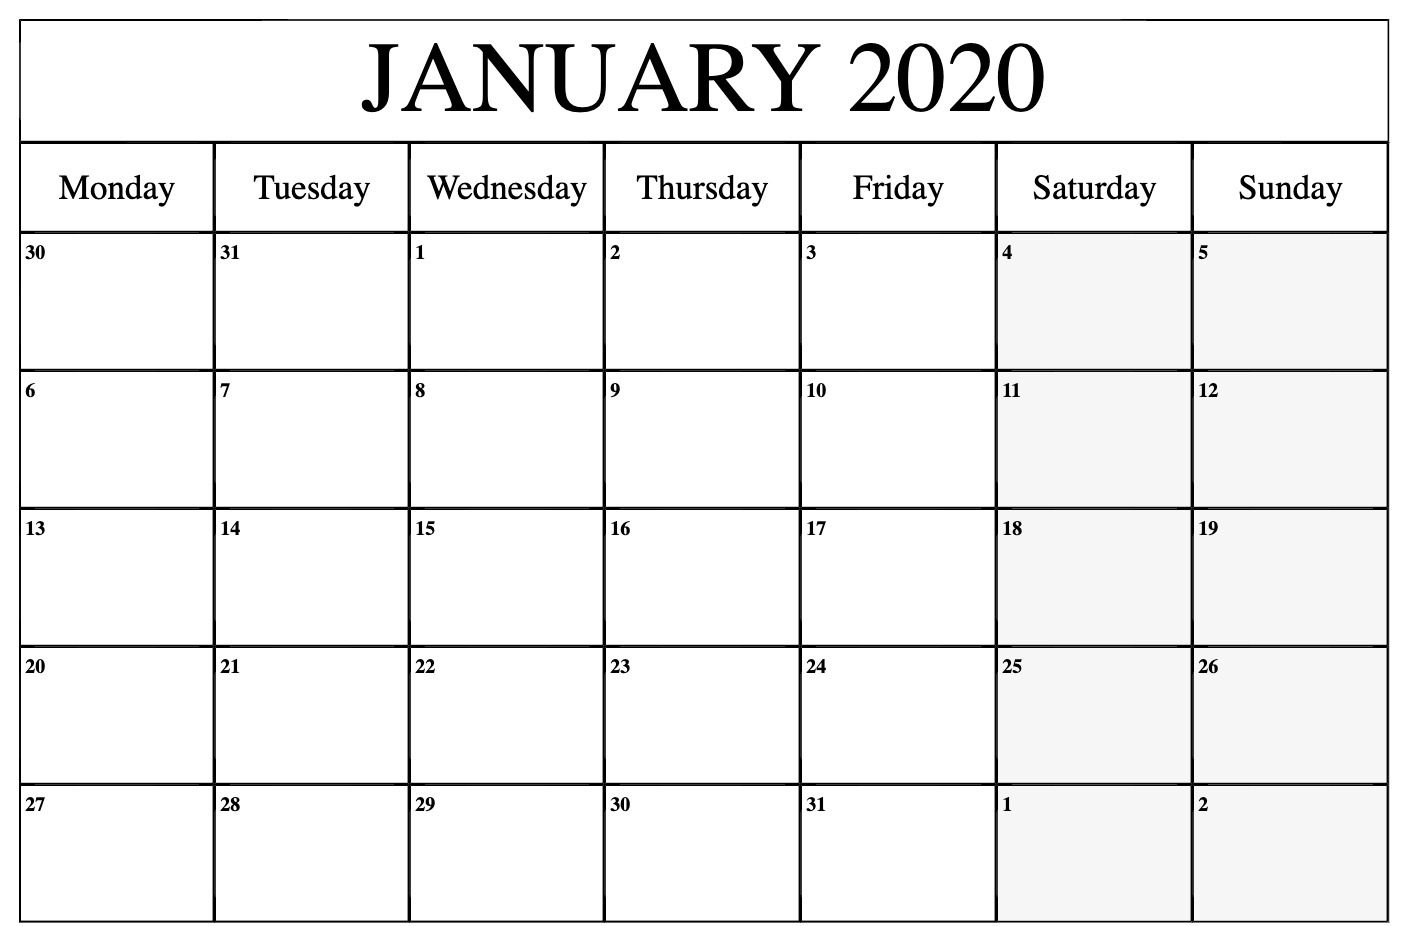 Free January Calendar 2020 Printable Template Blank in PDF Word Excel 1